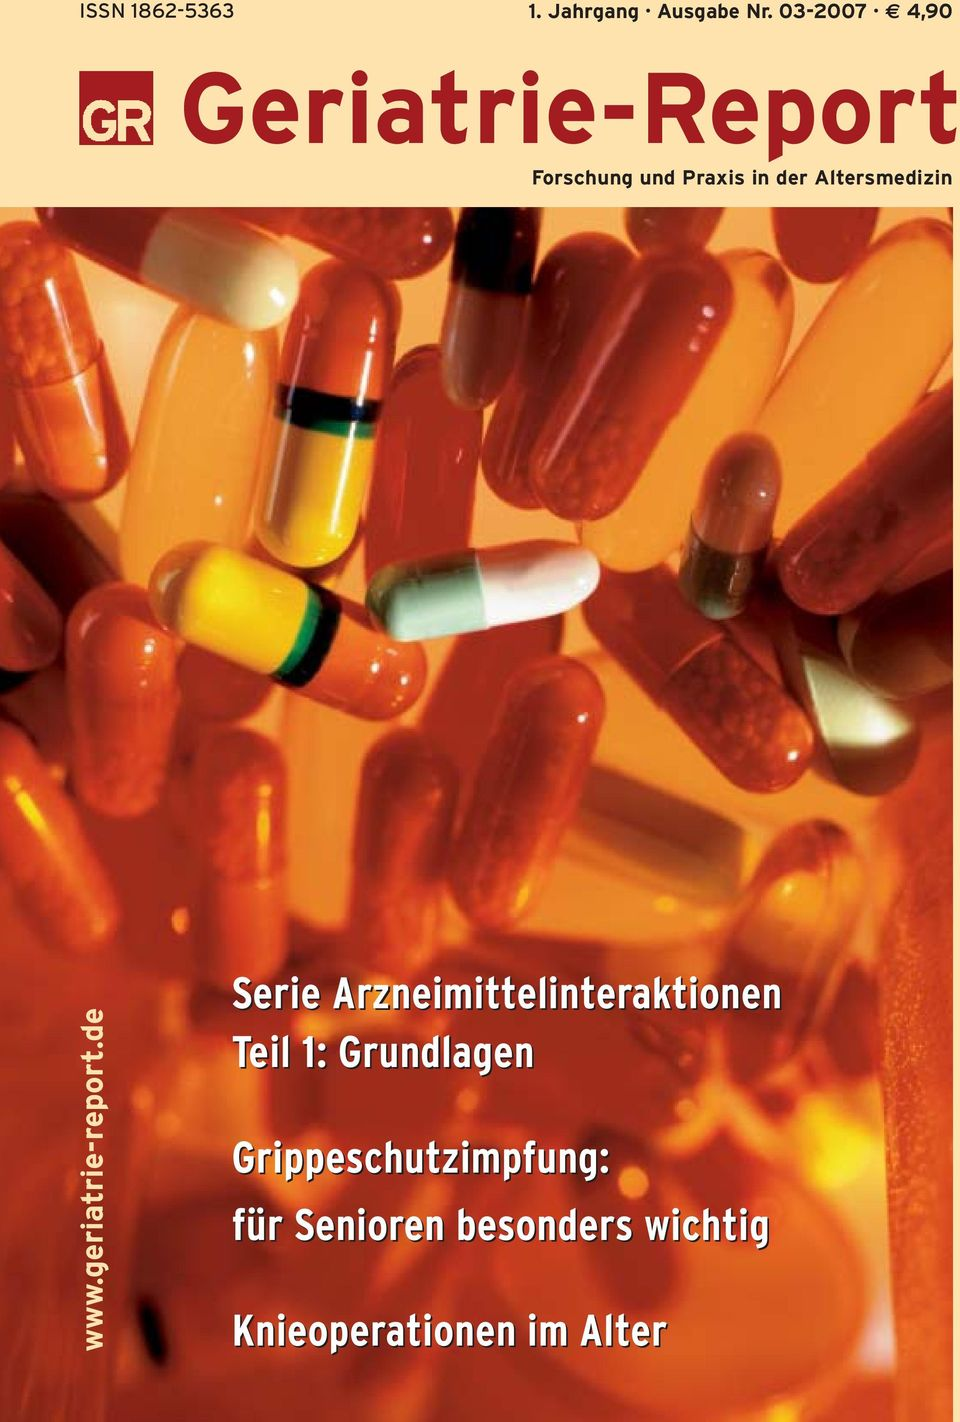 Altersmedizin www.geriatrie-report.